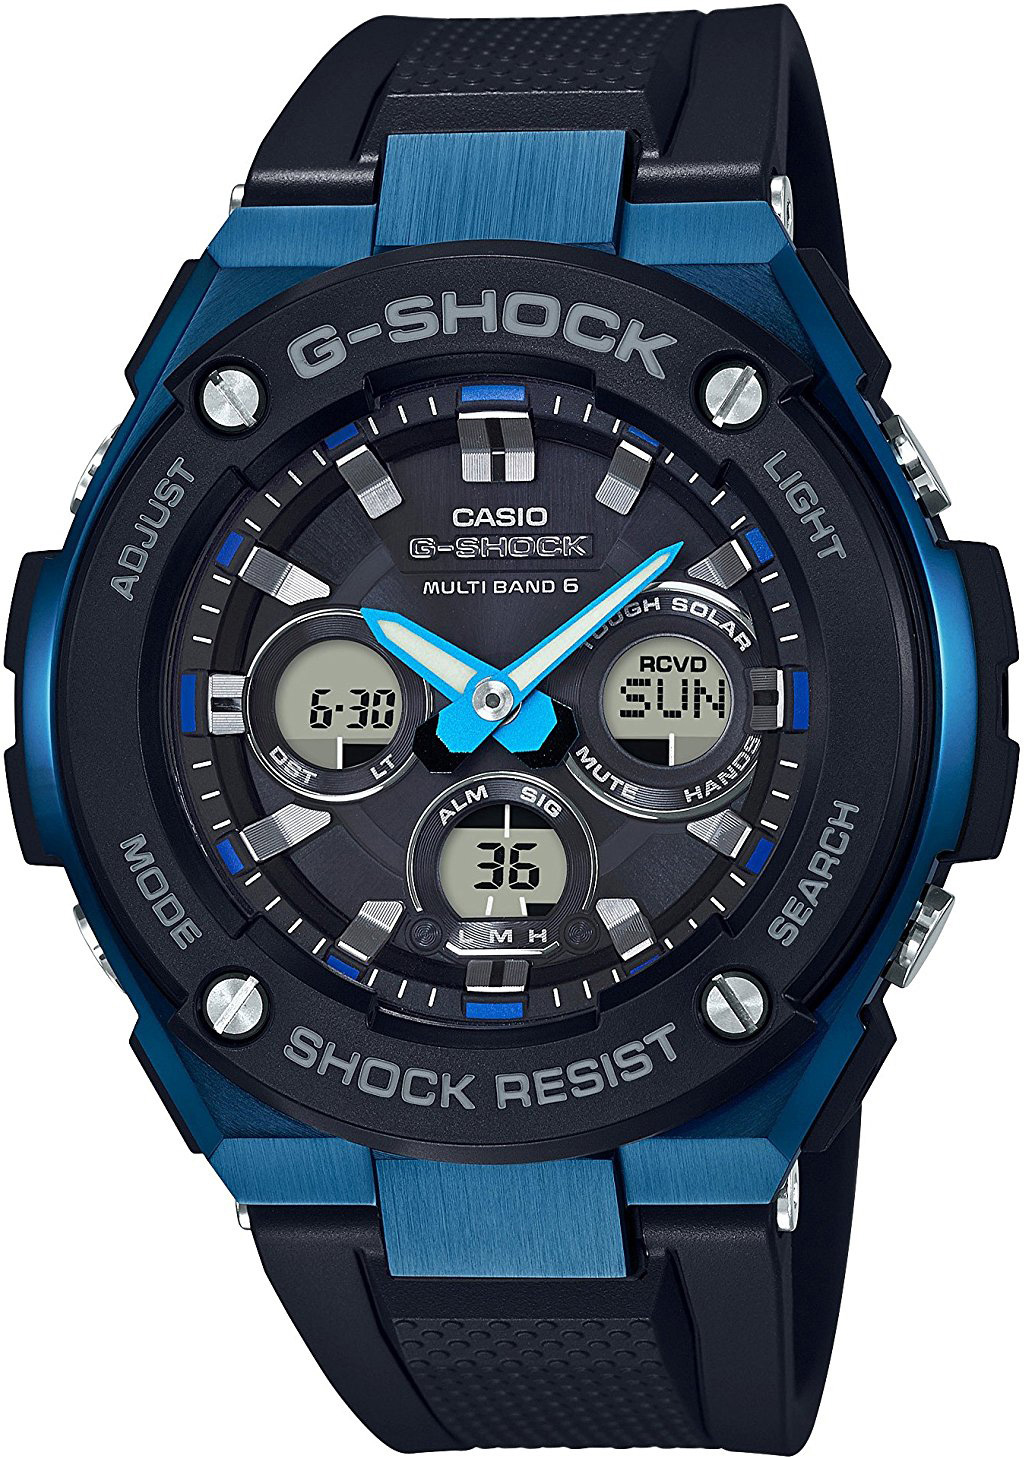 Casio G-shock G-Steel GST-W300G-1A2